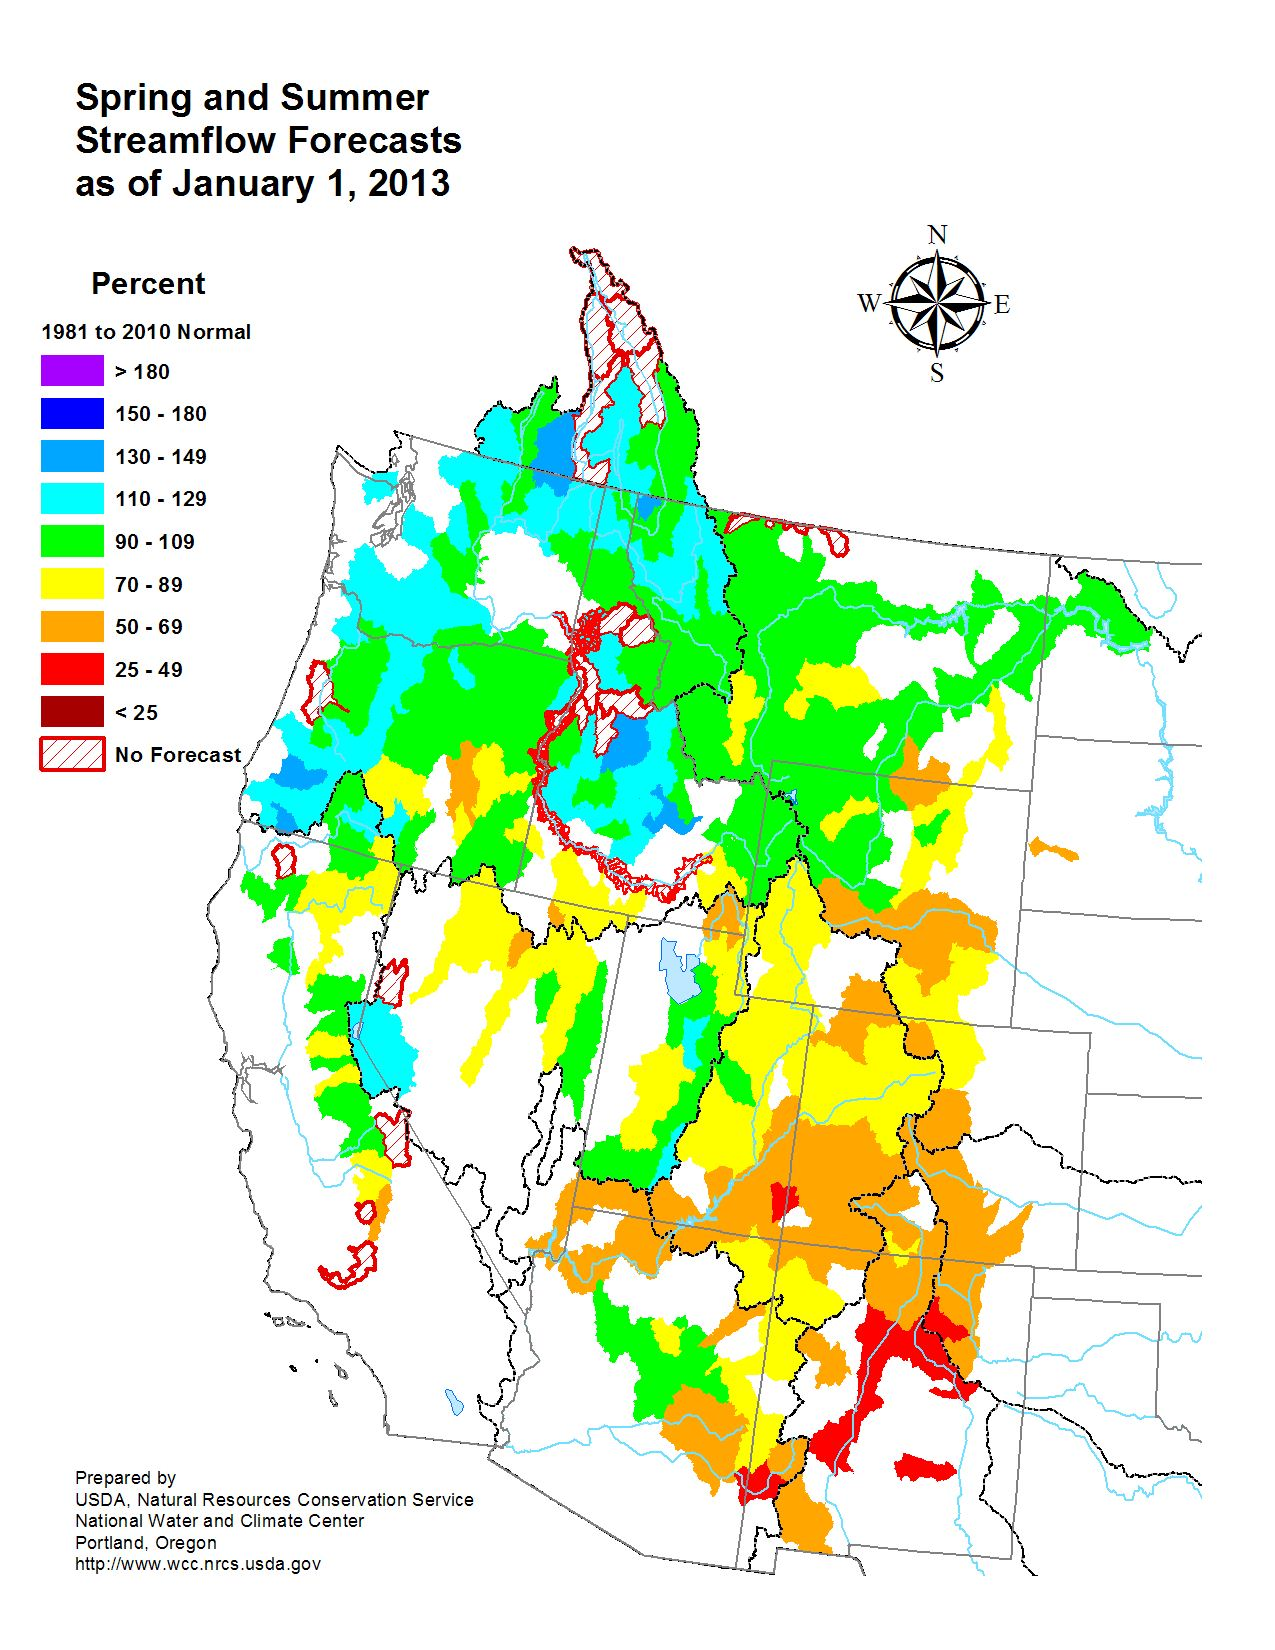 January 2013 Spring and Summer Streamflow Forecast